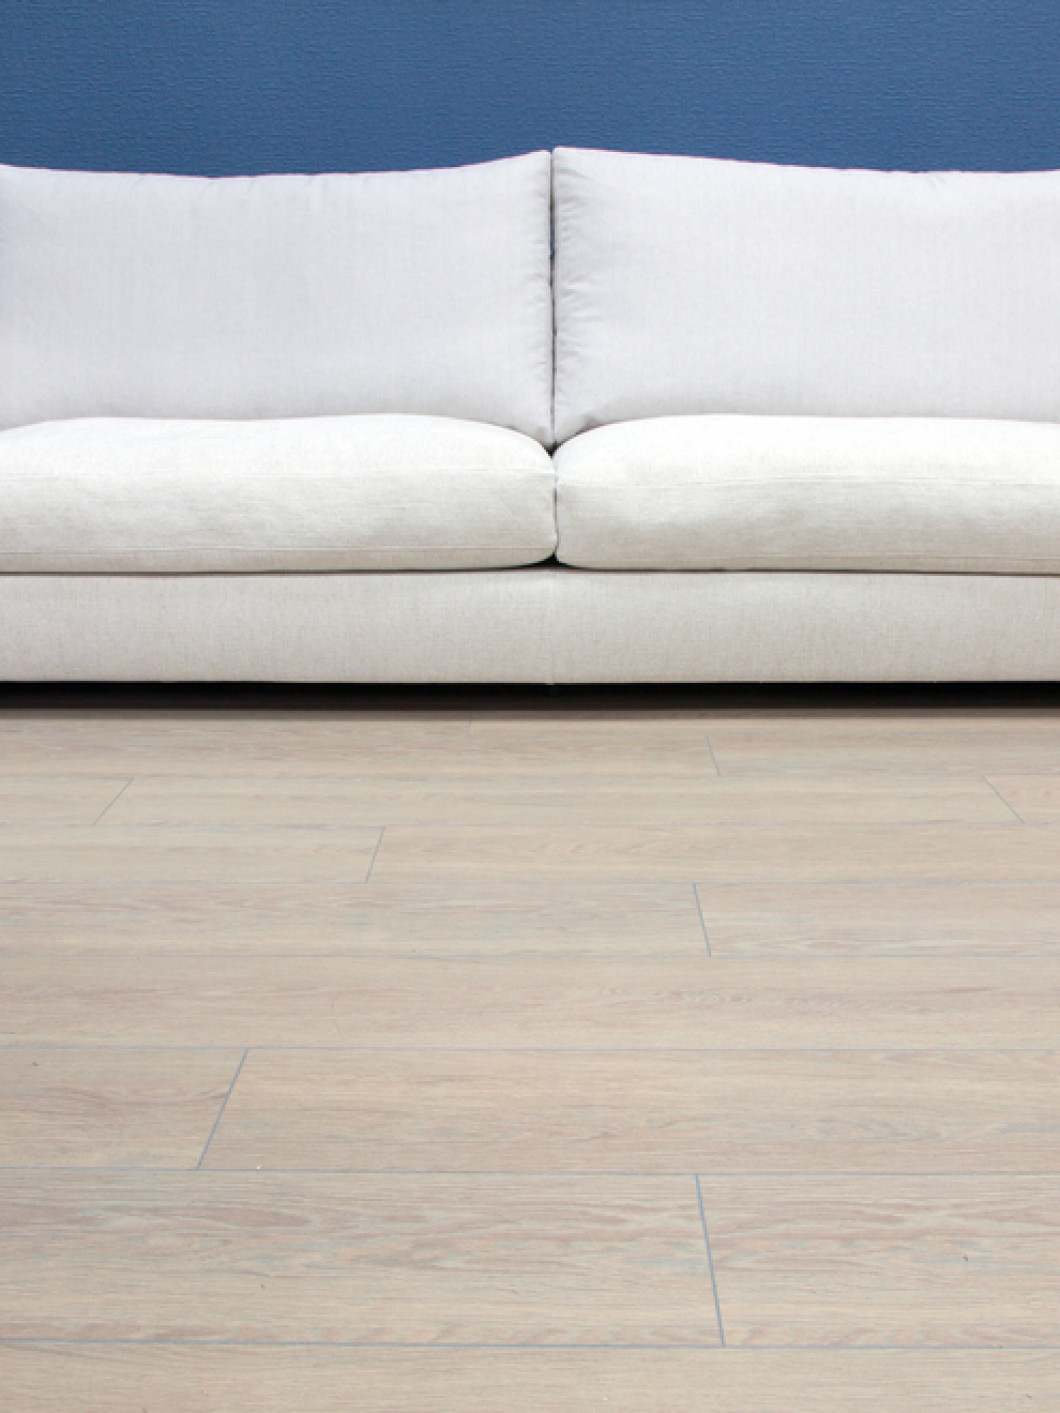 Want Affordable Floors That Look Like Hardwood?